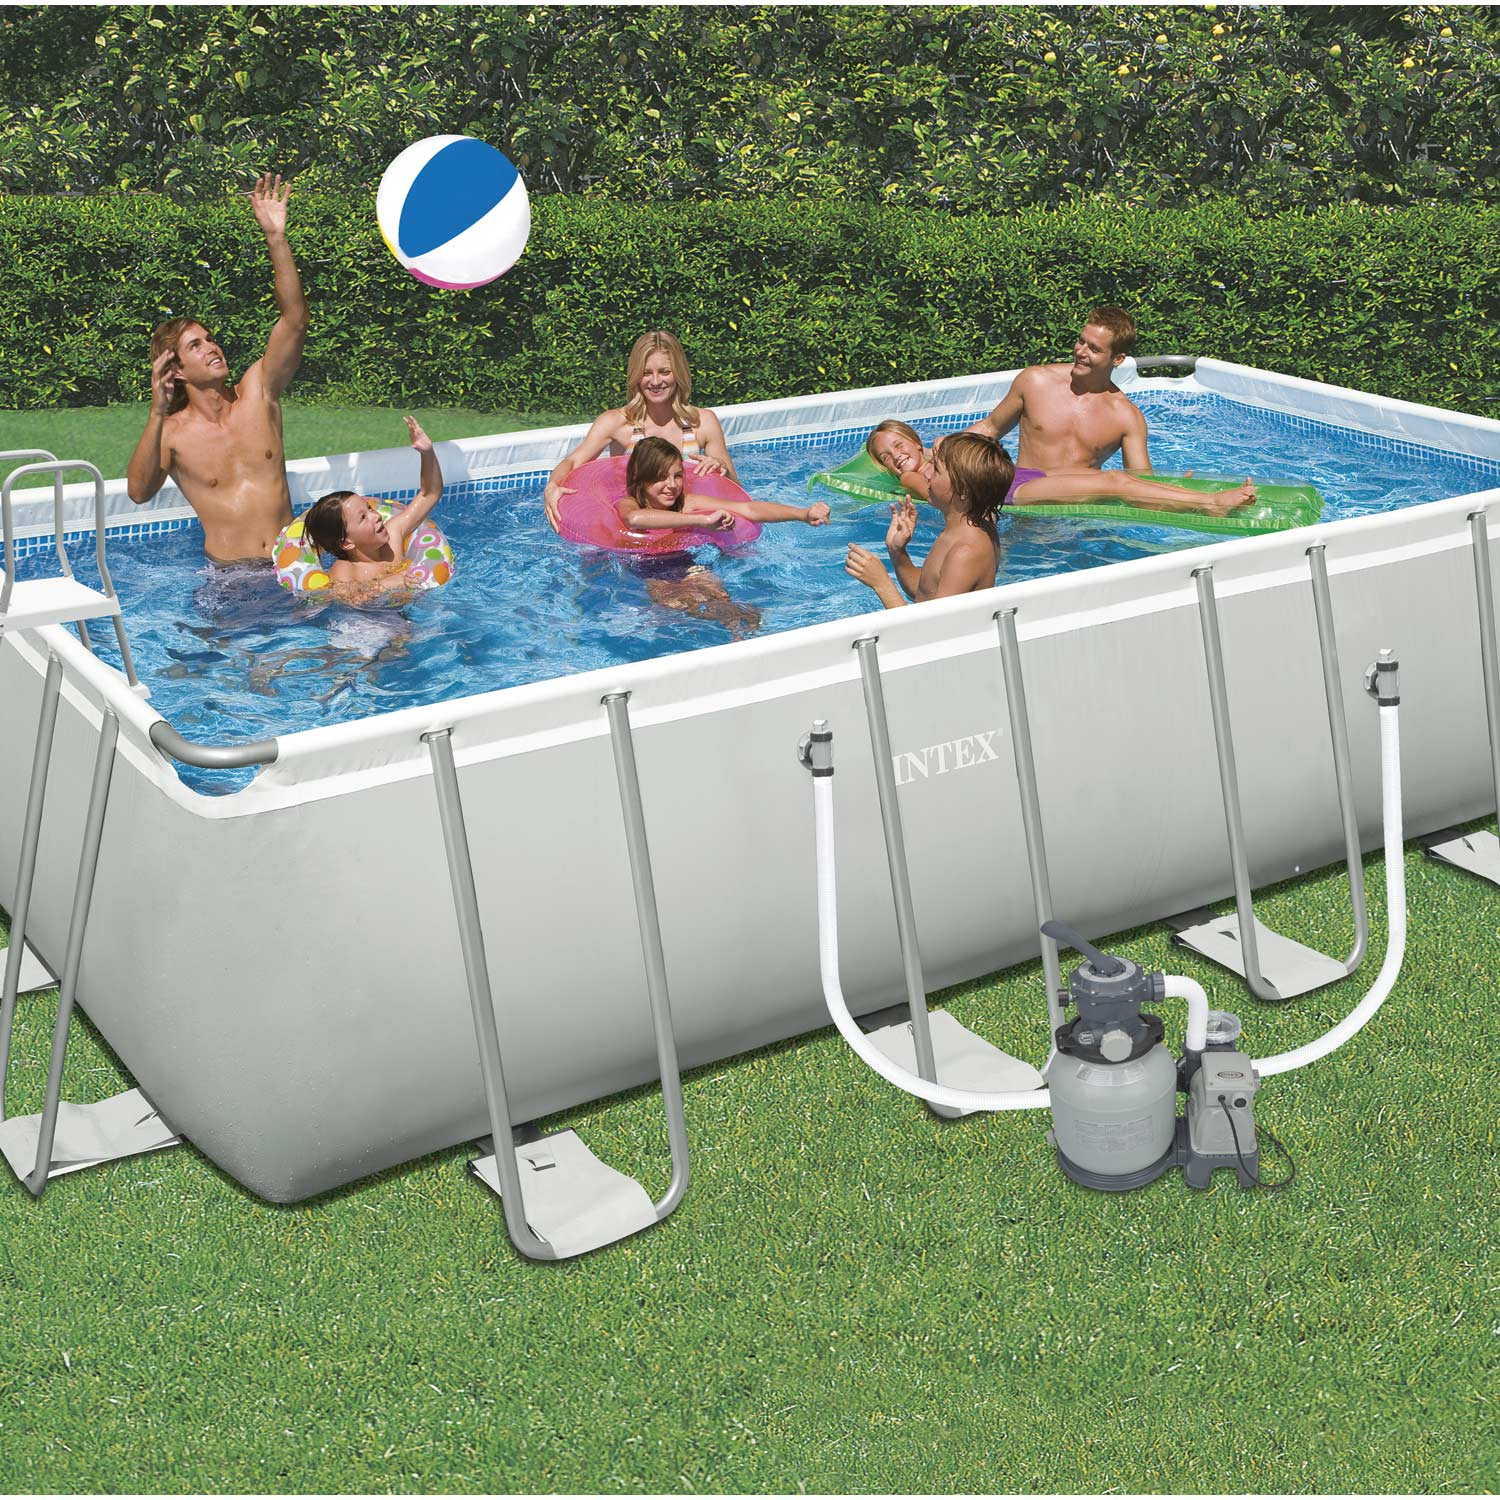 Piscine hors sol autoportante tubulaire ultra silver intex for Piscine hors sol durable